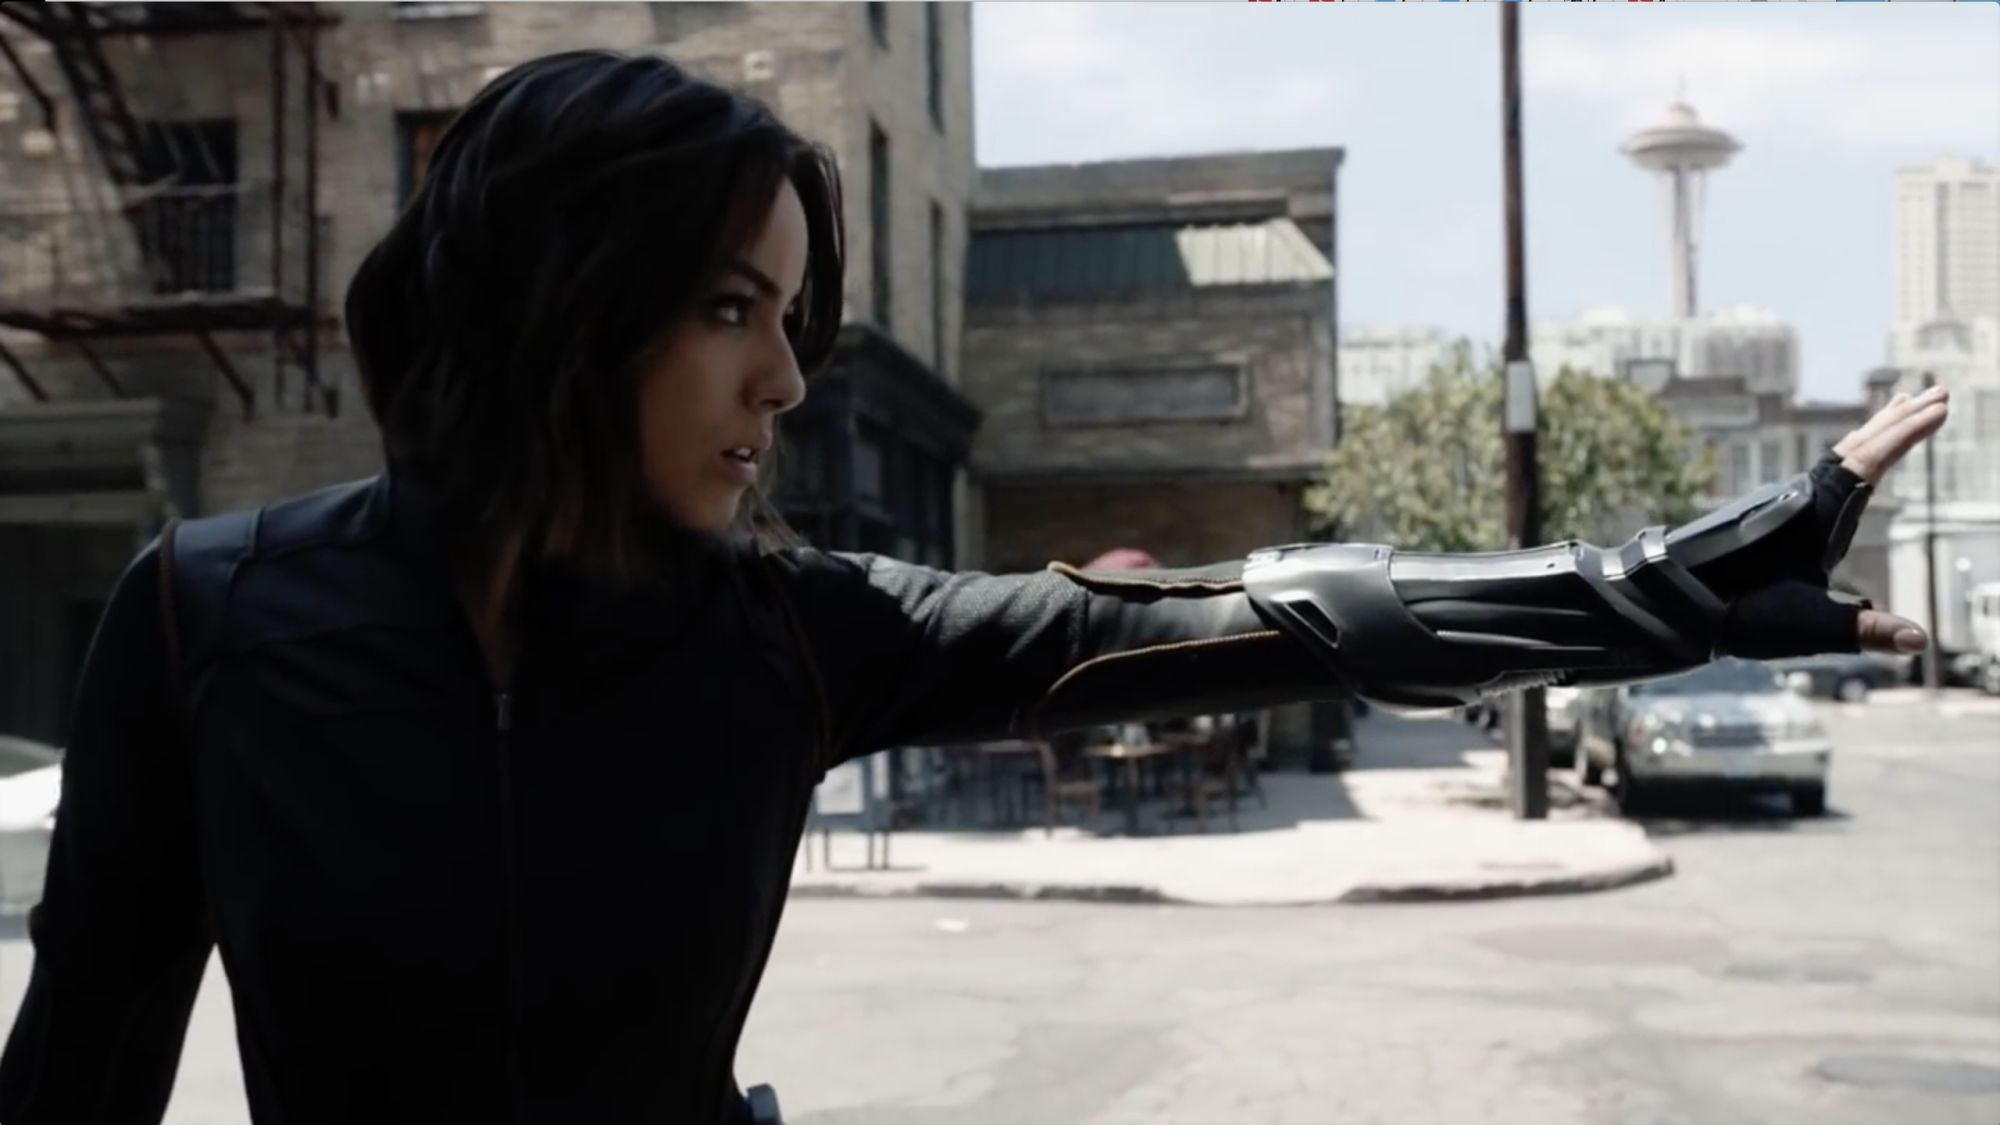 Marvel's Agents of S.H.I.E.L.D. - 03x01 - Laws of Nature